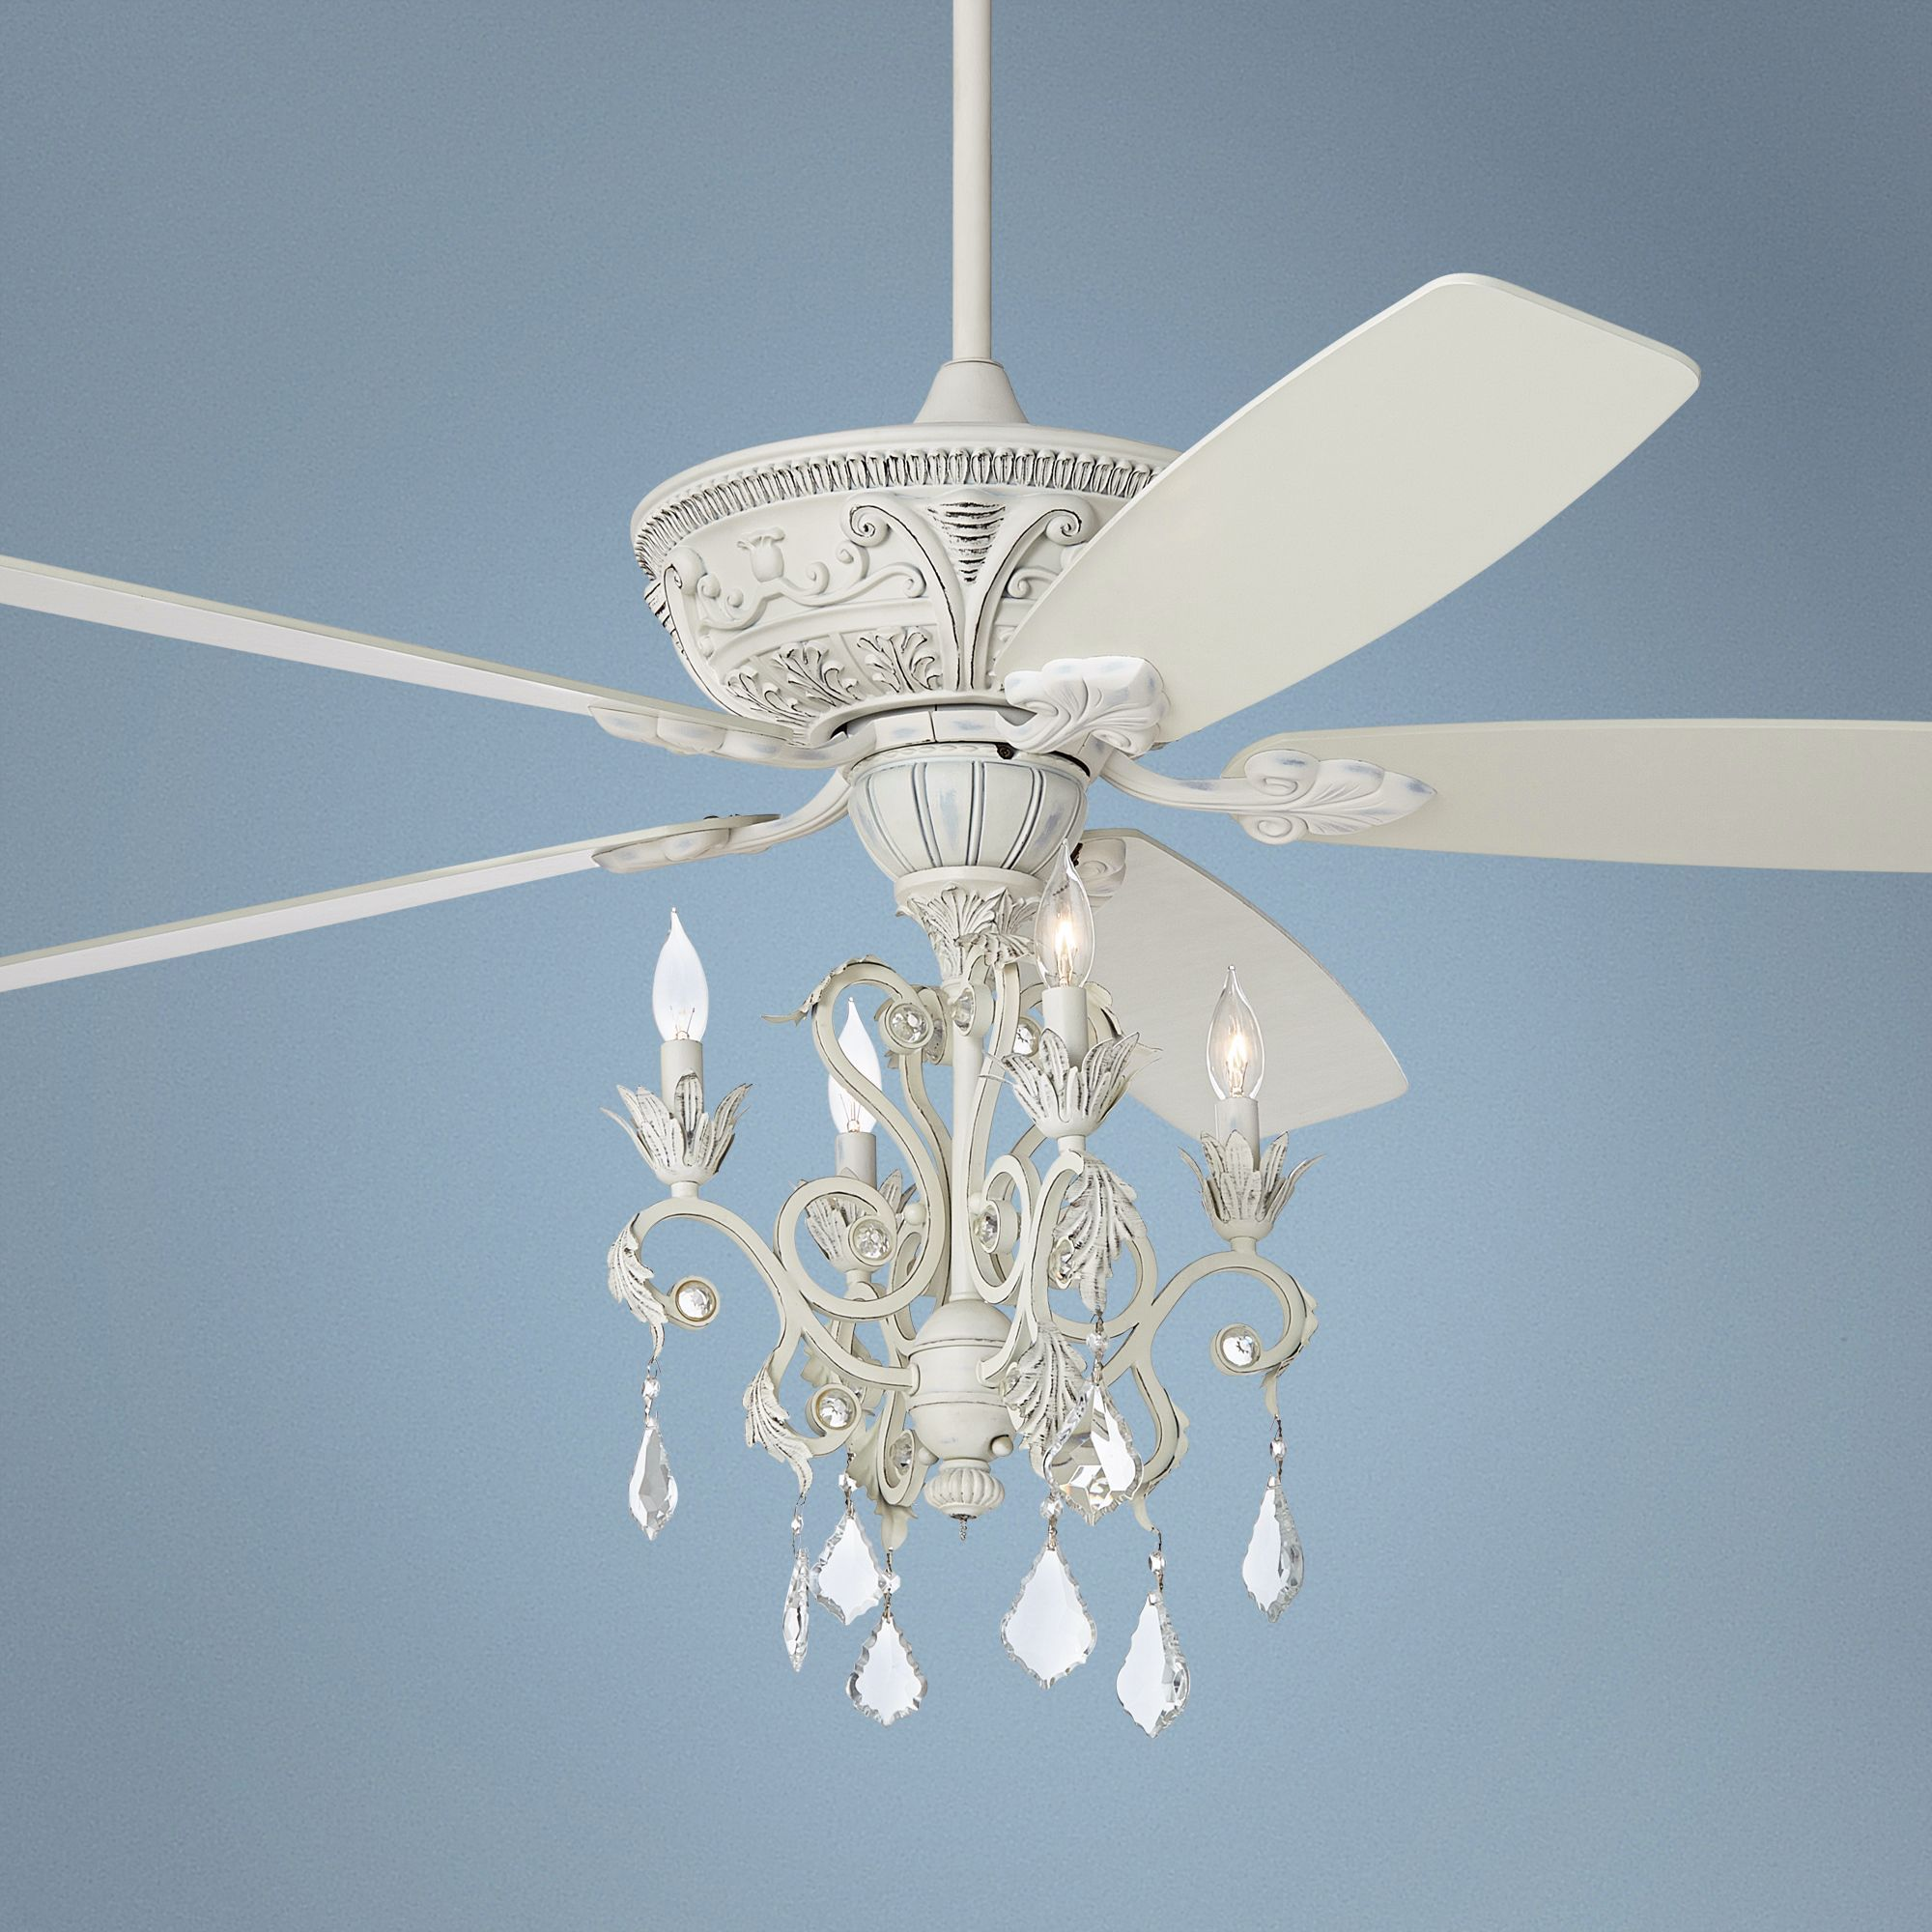 Customize Your Ceiling Fan With Hunter Light Kit Lowes Fans Outdoor